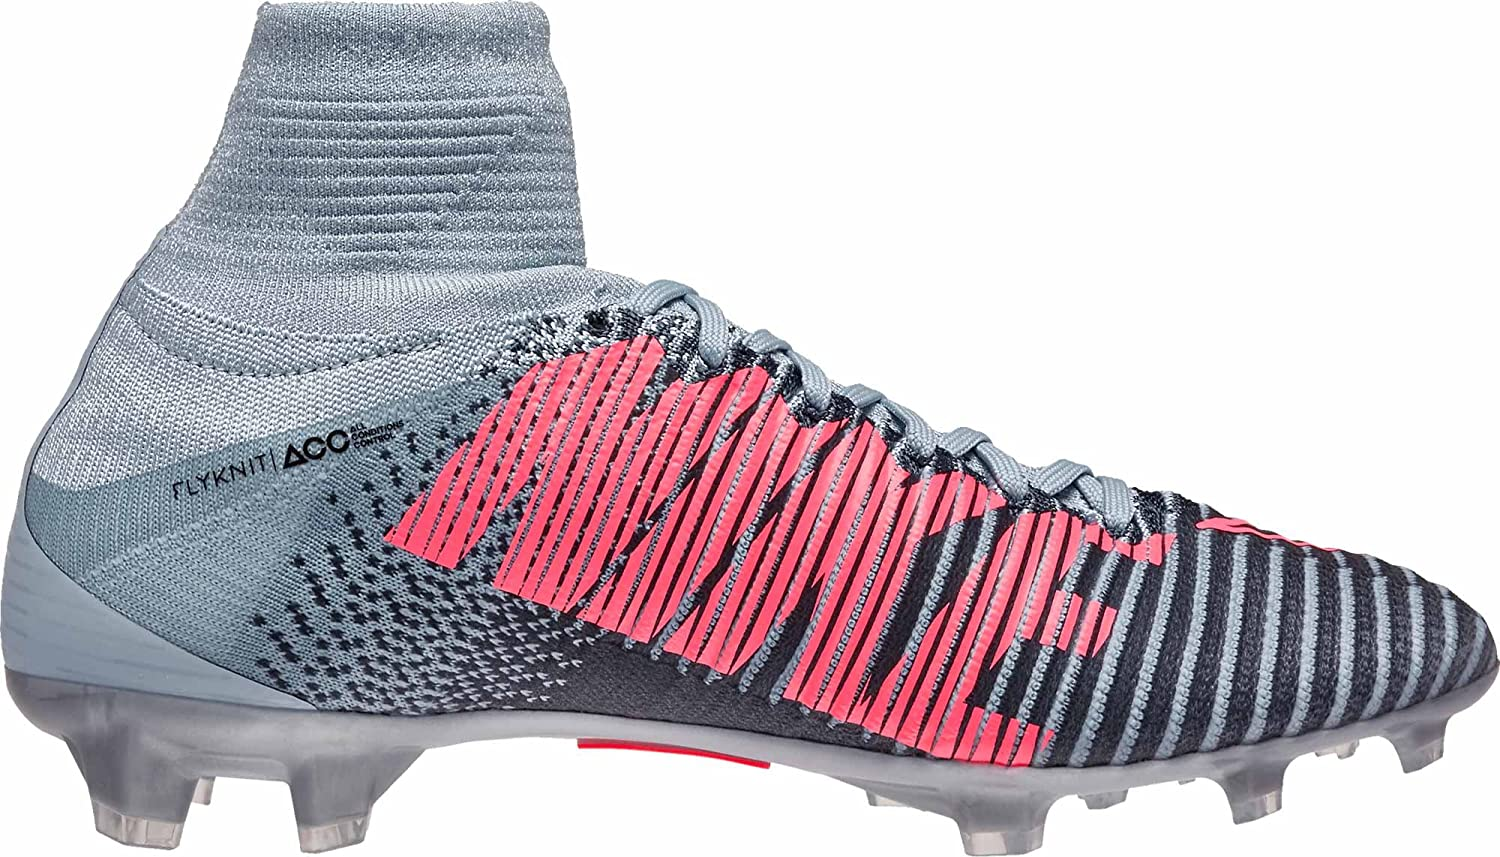 Nike Kids Mercurial Superfly V FG Soccer Cleats/サッカー クリーツ ジュニア向け B005NDB78I US Size 6 24.0 cm